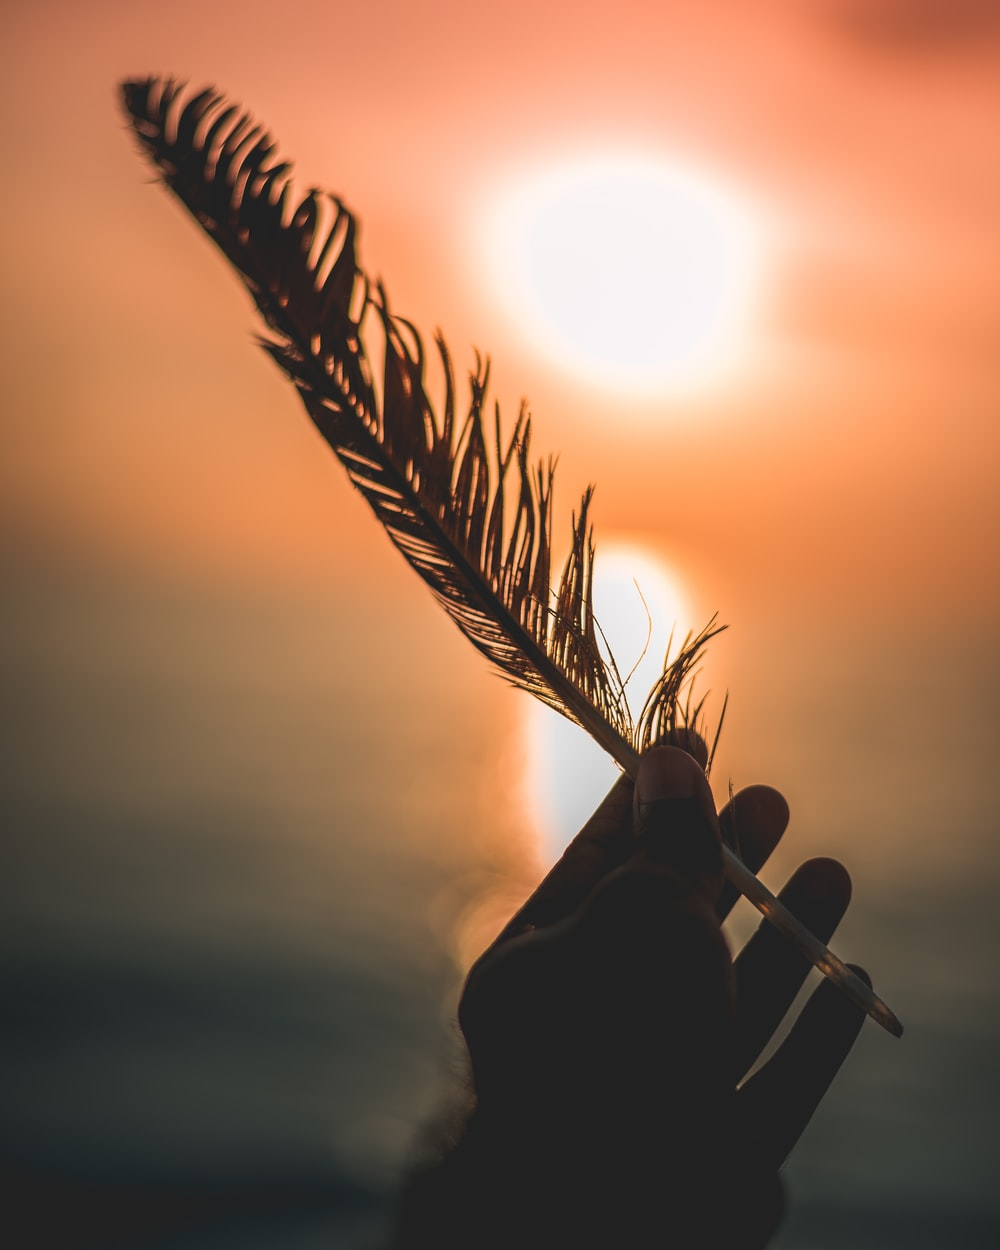 silhouette of person's hand holding bird feather